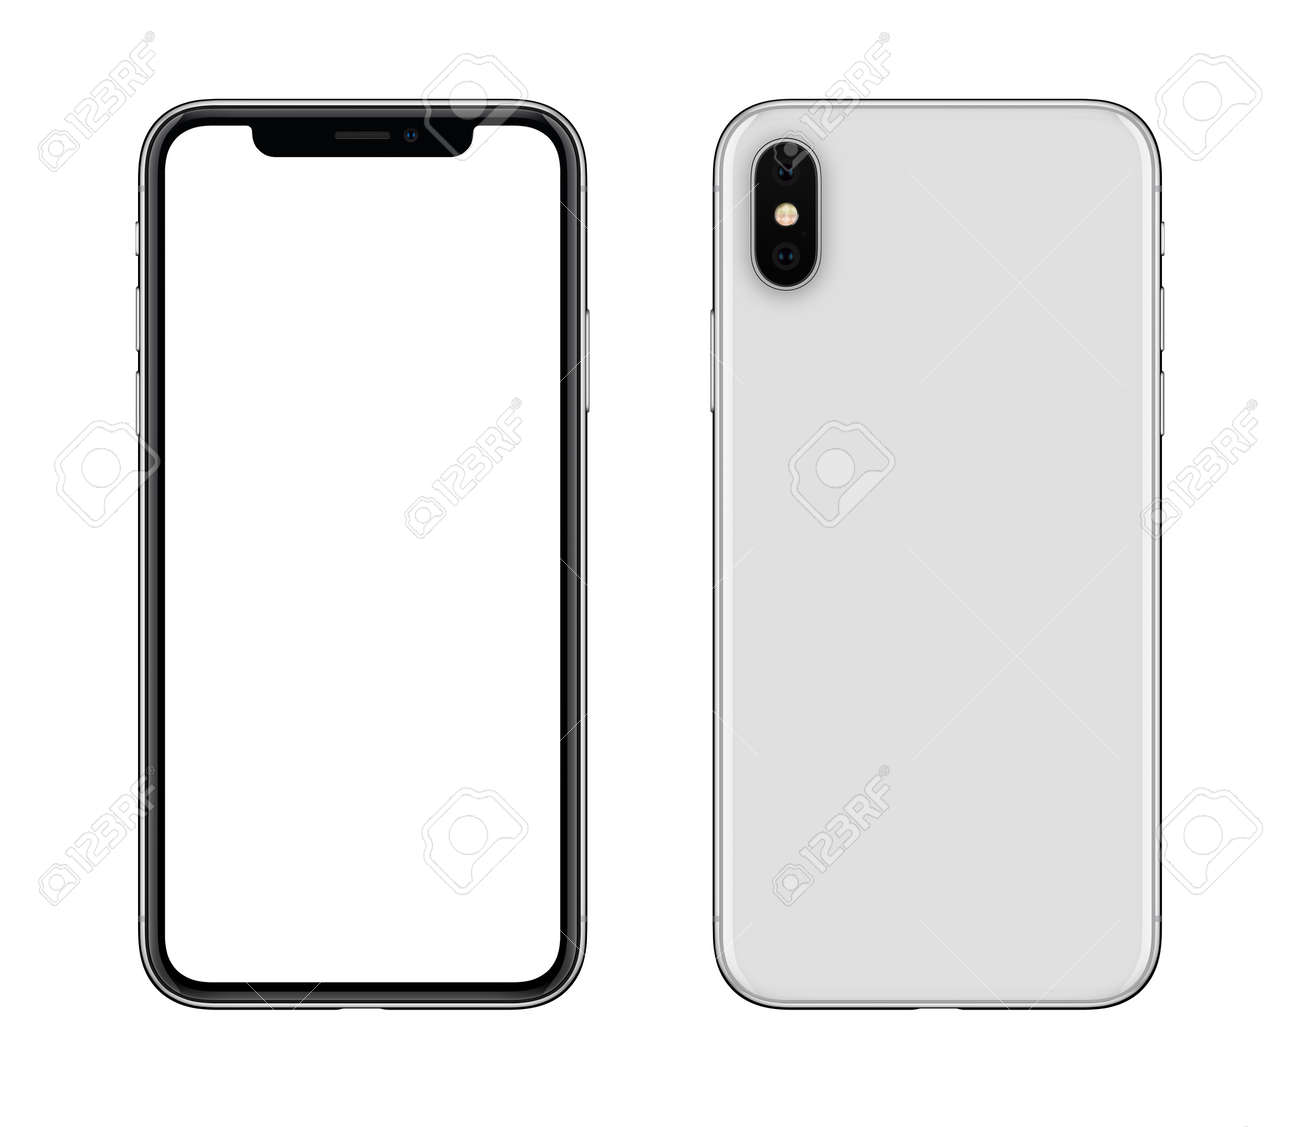 New modern white smartphone mockup front and back sides isolated on white background - 87986468